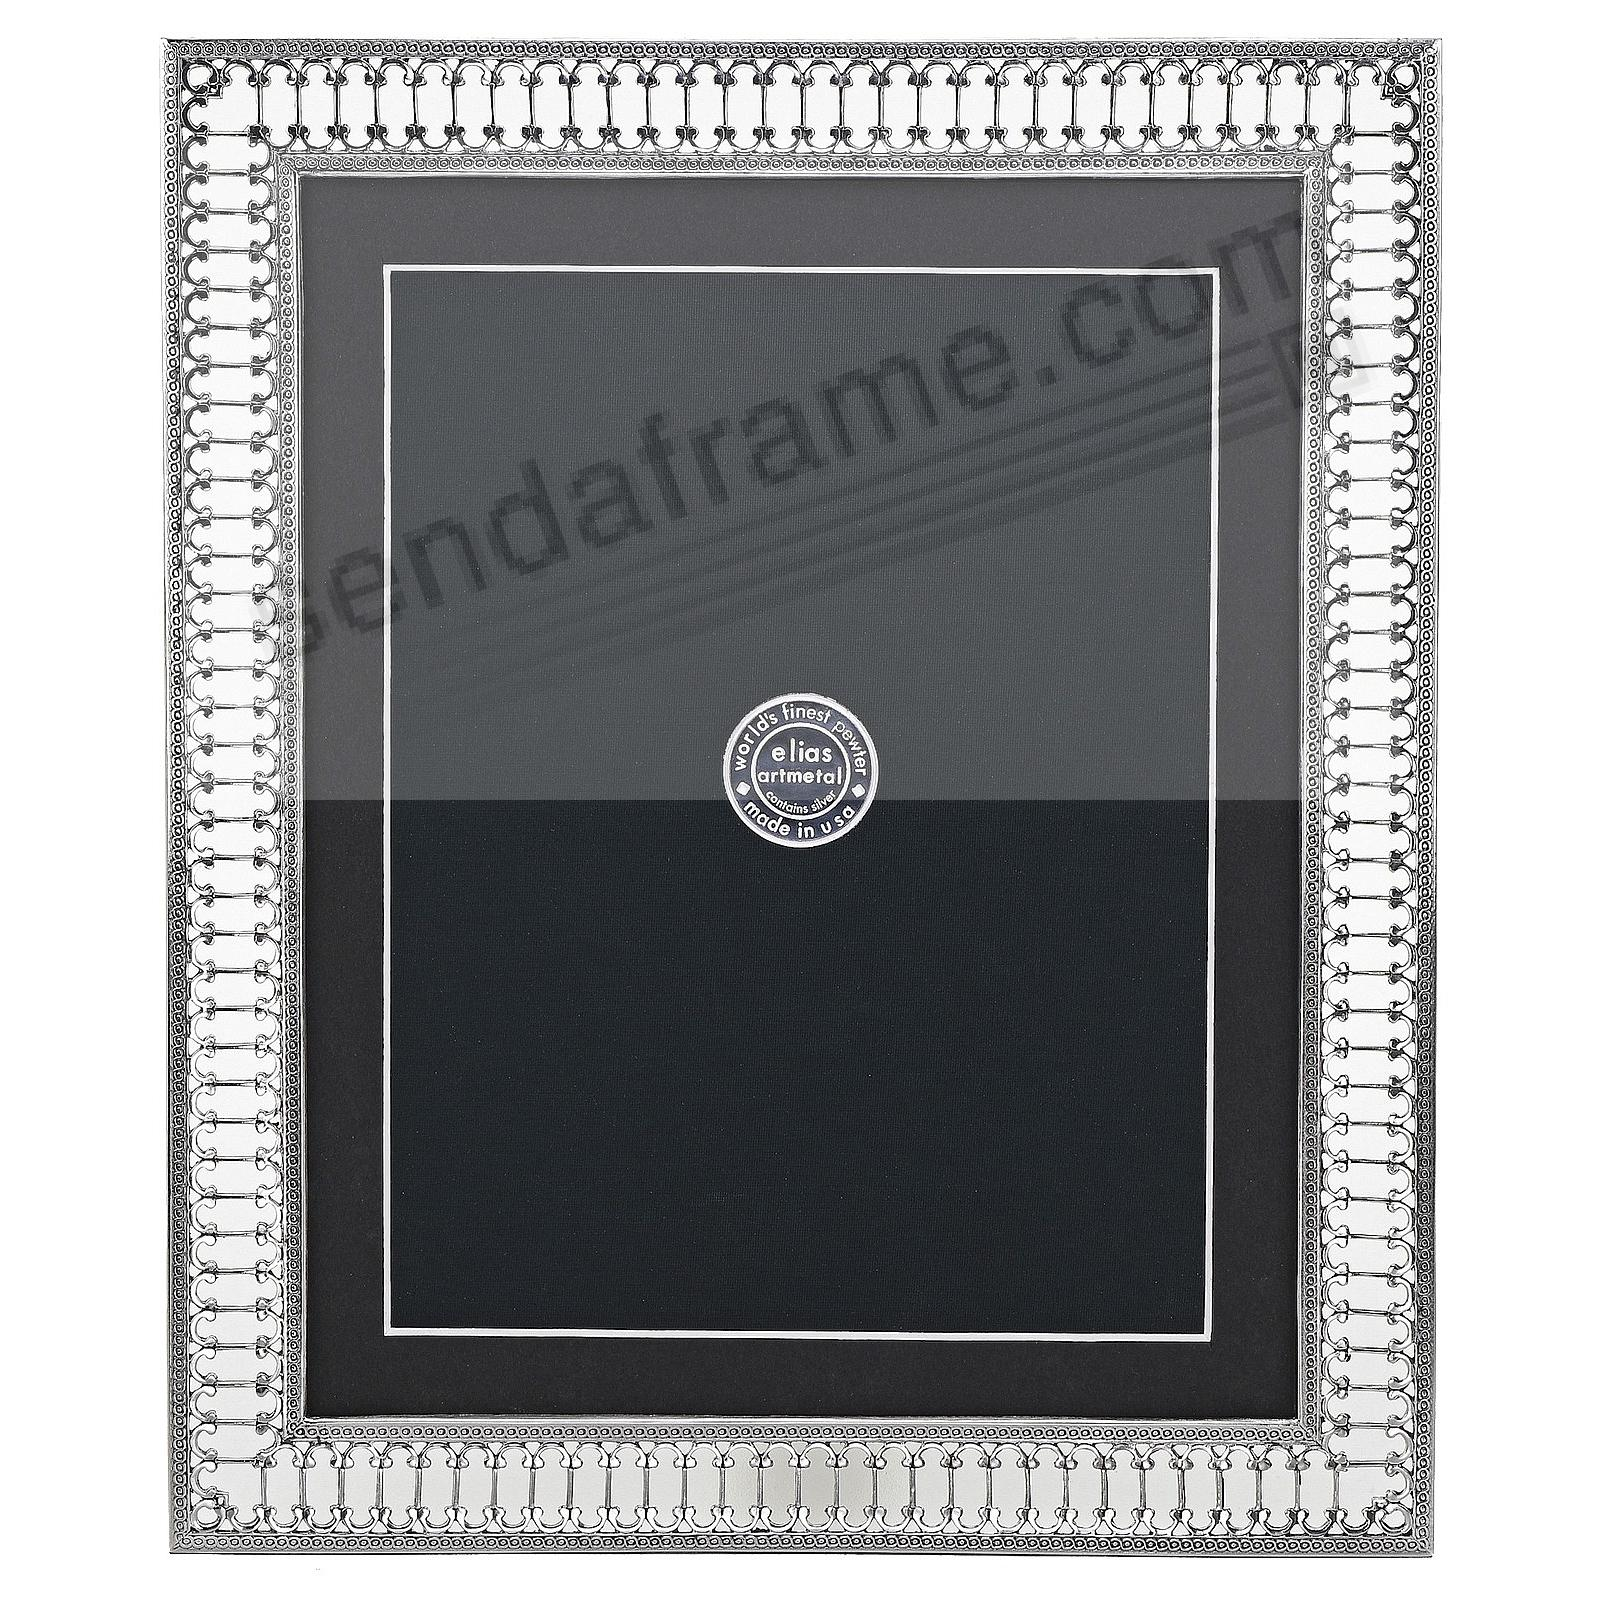 PARIS METRO Fine Silvered Pewter frame 8x10/7x9 by Elias Artmetal®